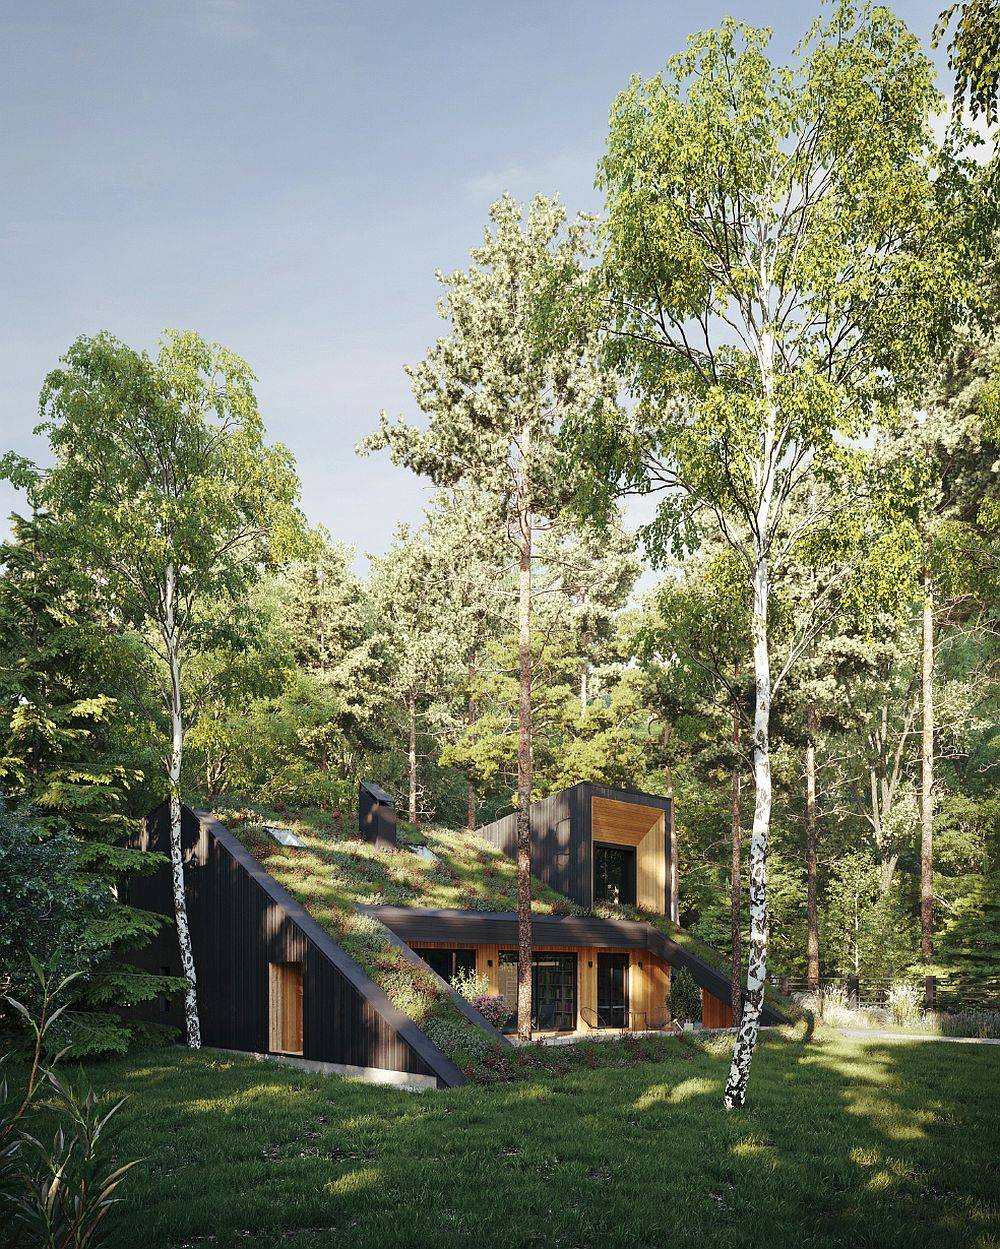 Tall trees around the green home add an additional layer of cover and improve passive heating and cooling